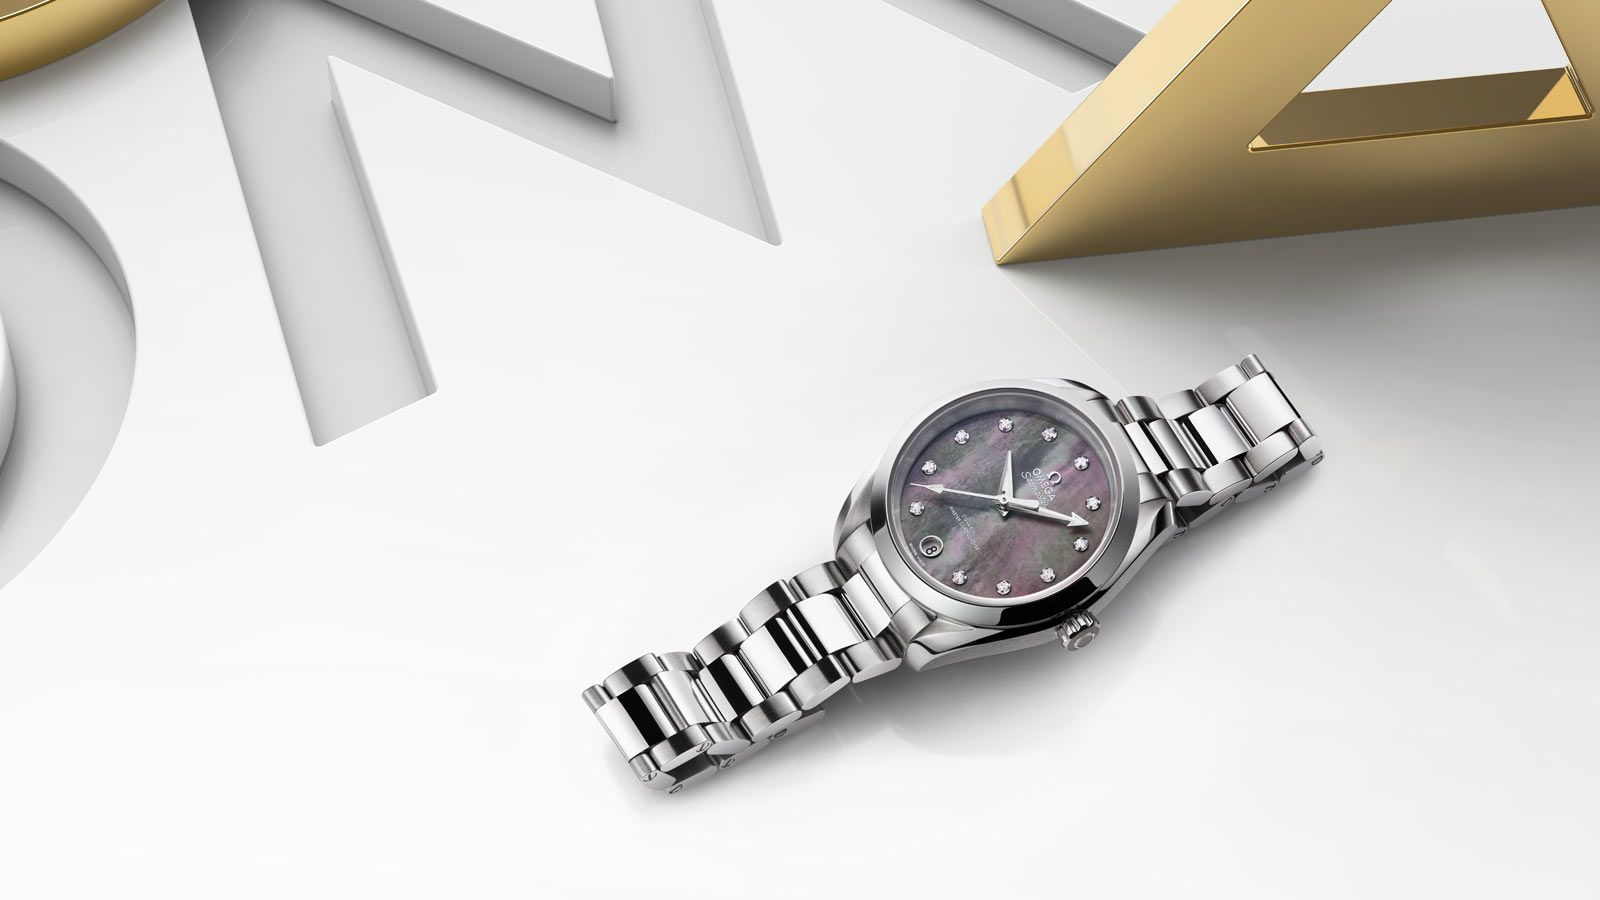 OMEGA Watches: Seamaster Aqua Terra 150M Ladies' Collection - available in three different sizes and feature refined new cases, innovative design twists and Master Chronometer movements which offer exceptional levels of precision and performance.